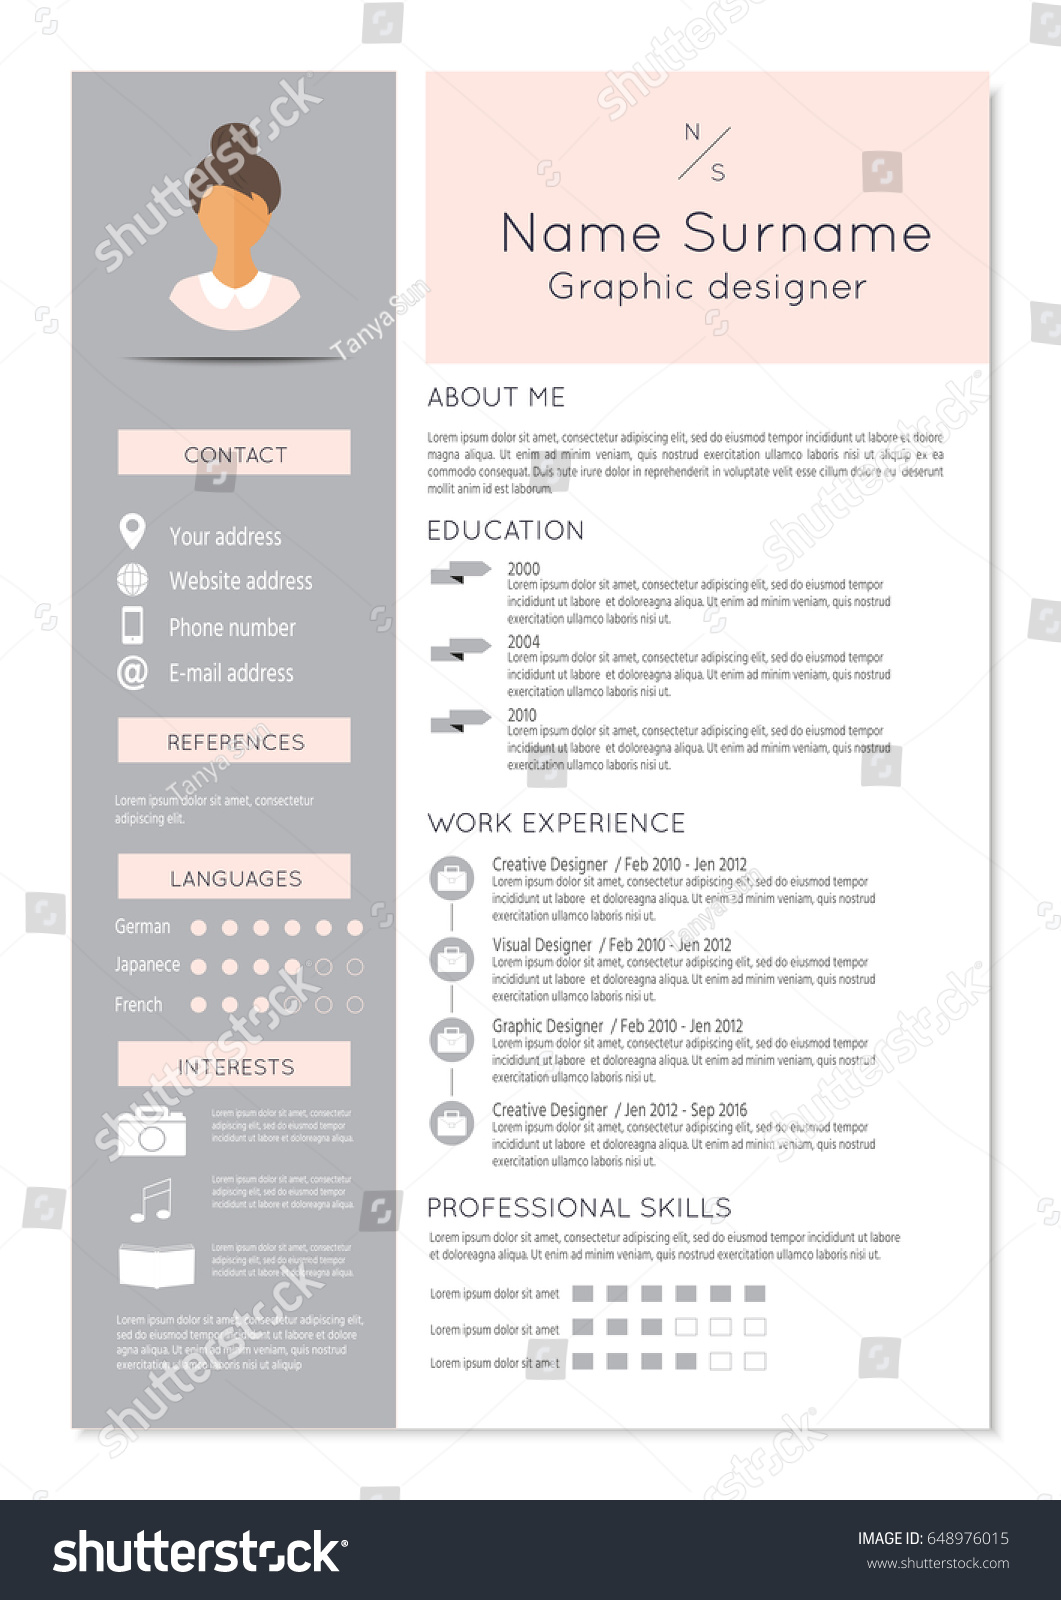 feminine resume infographic design stylish cv stock vector 648976015